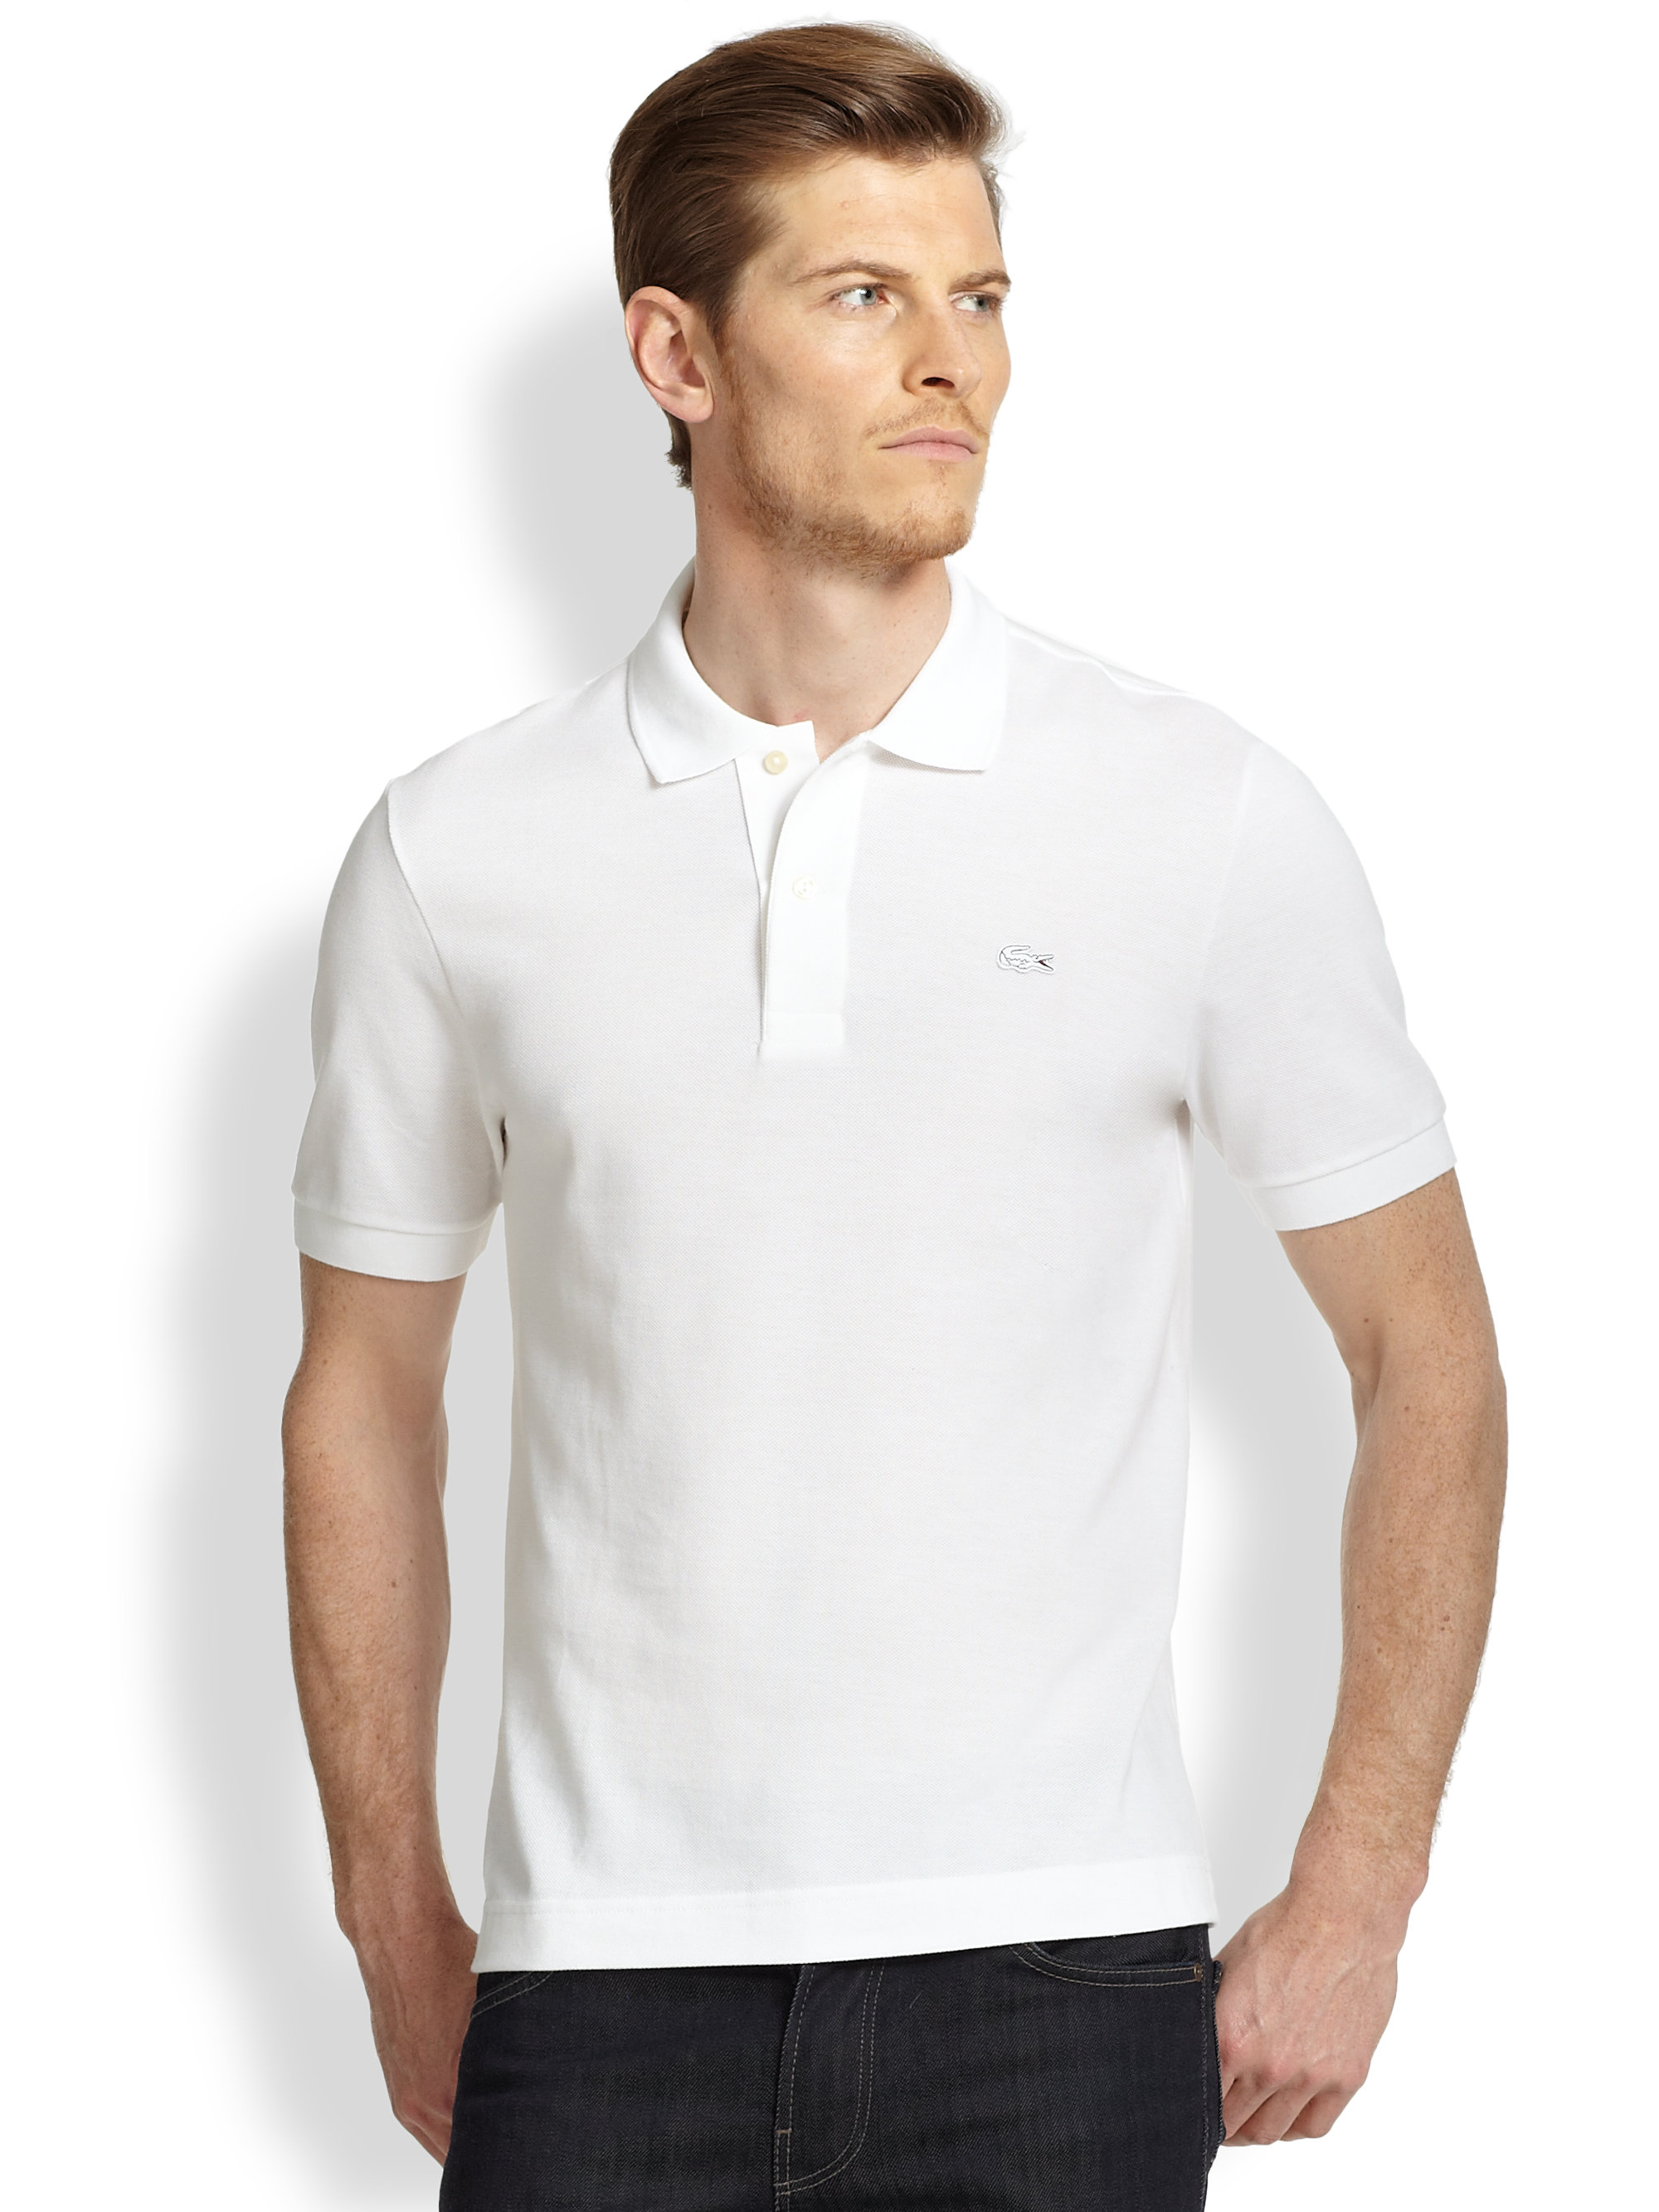 Lacoste tonal croc polo in white for men lyst for Boys lacoste polo shirt